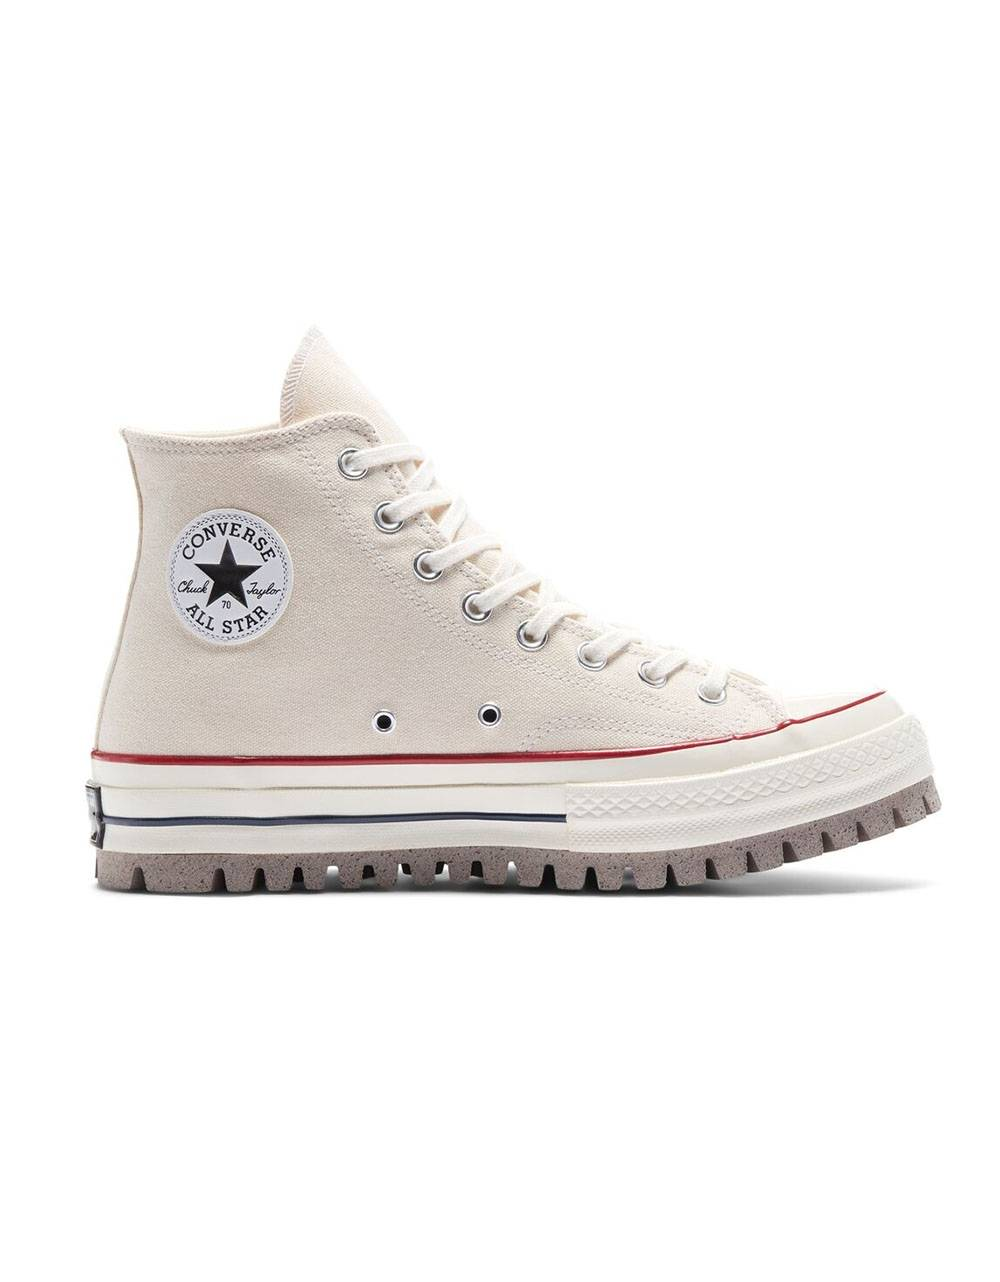 Converse Woman Trek Chuck 70 High Top - parchment vintage white Converse Sneakers 118,85 €